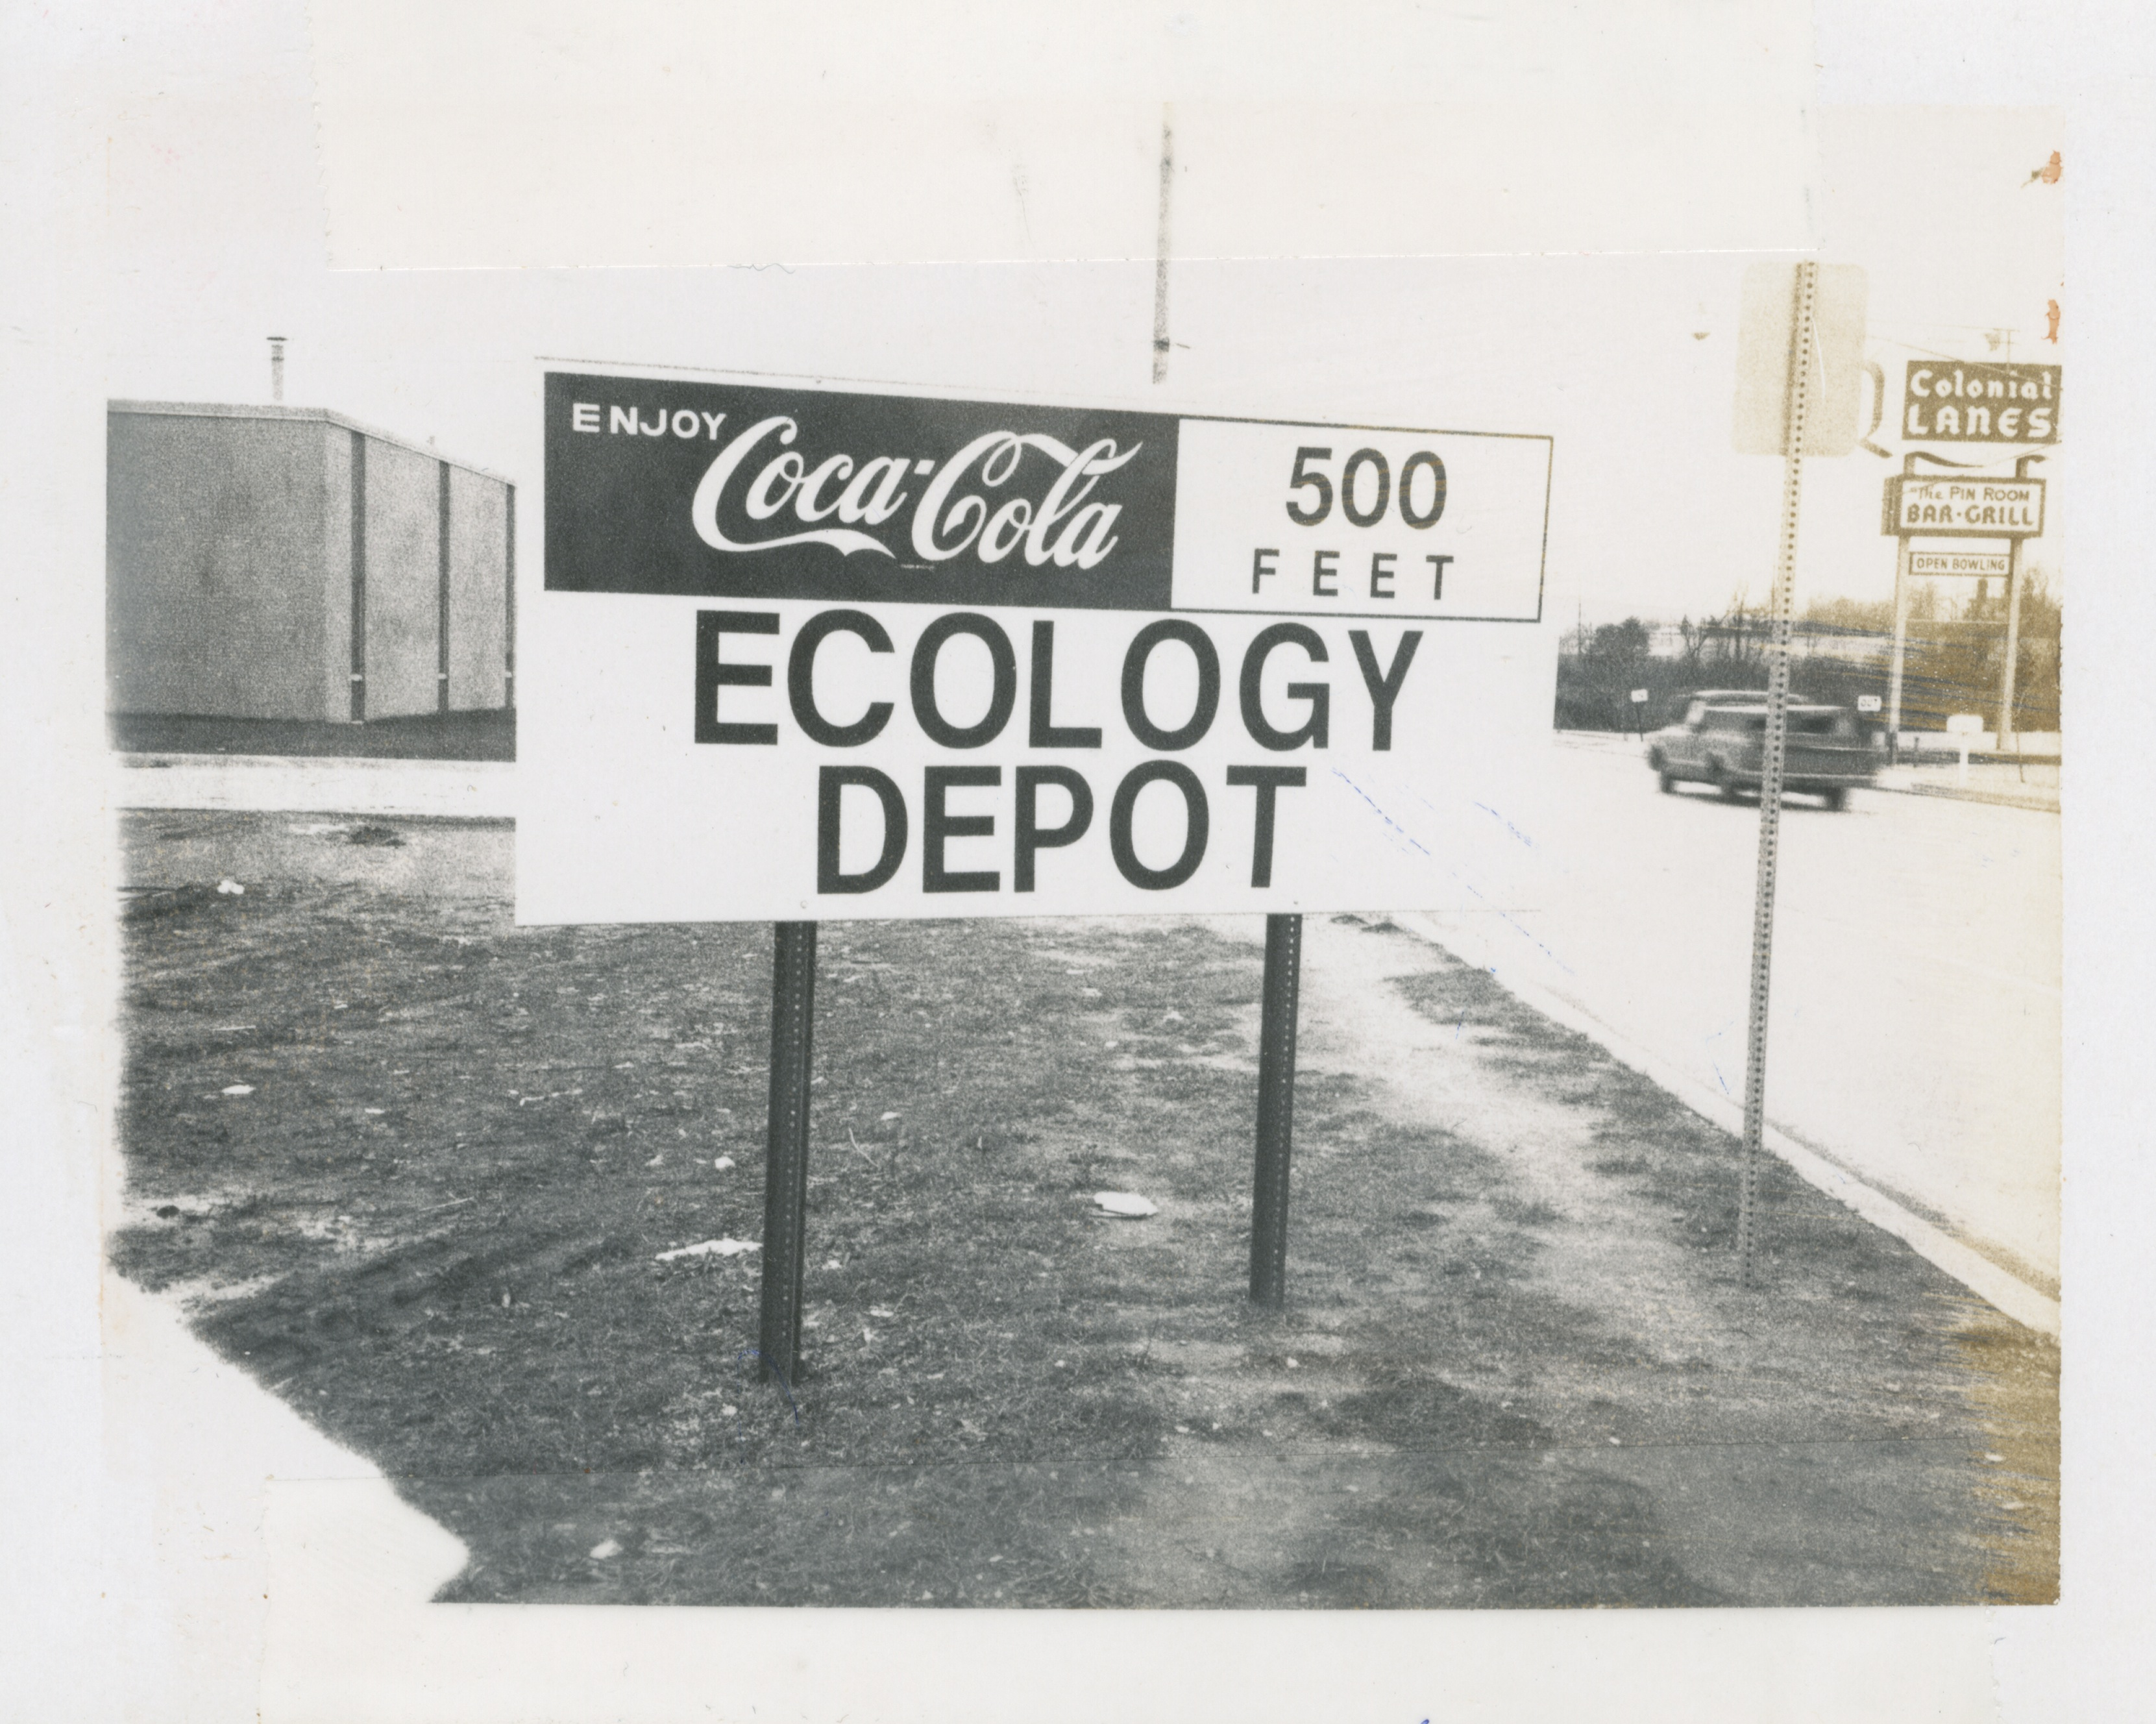 Coca Cola Bottling Co., 1971 image